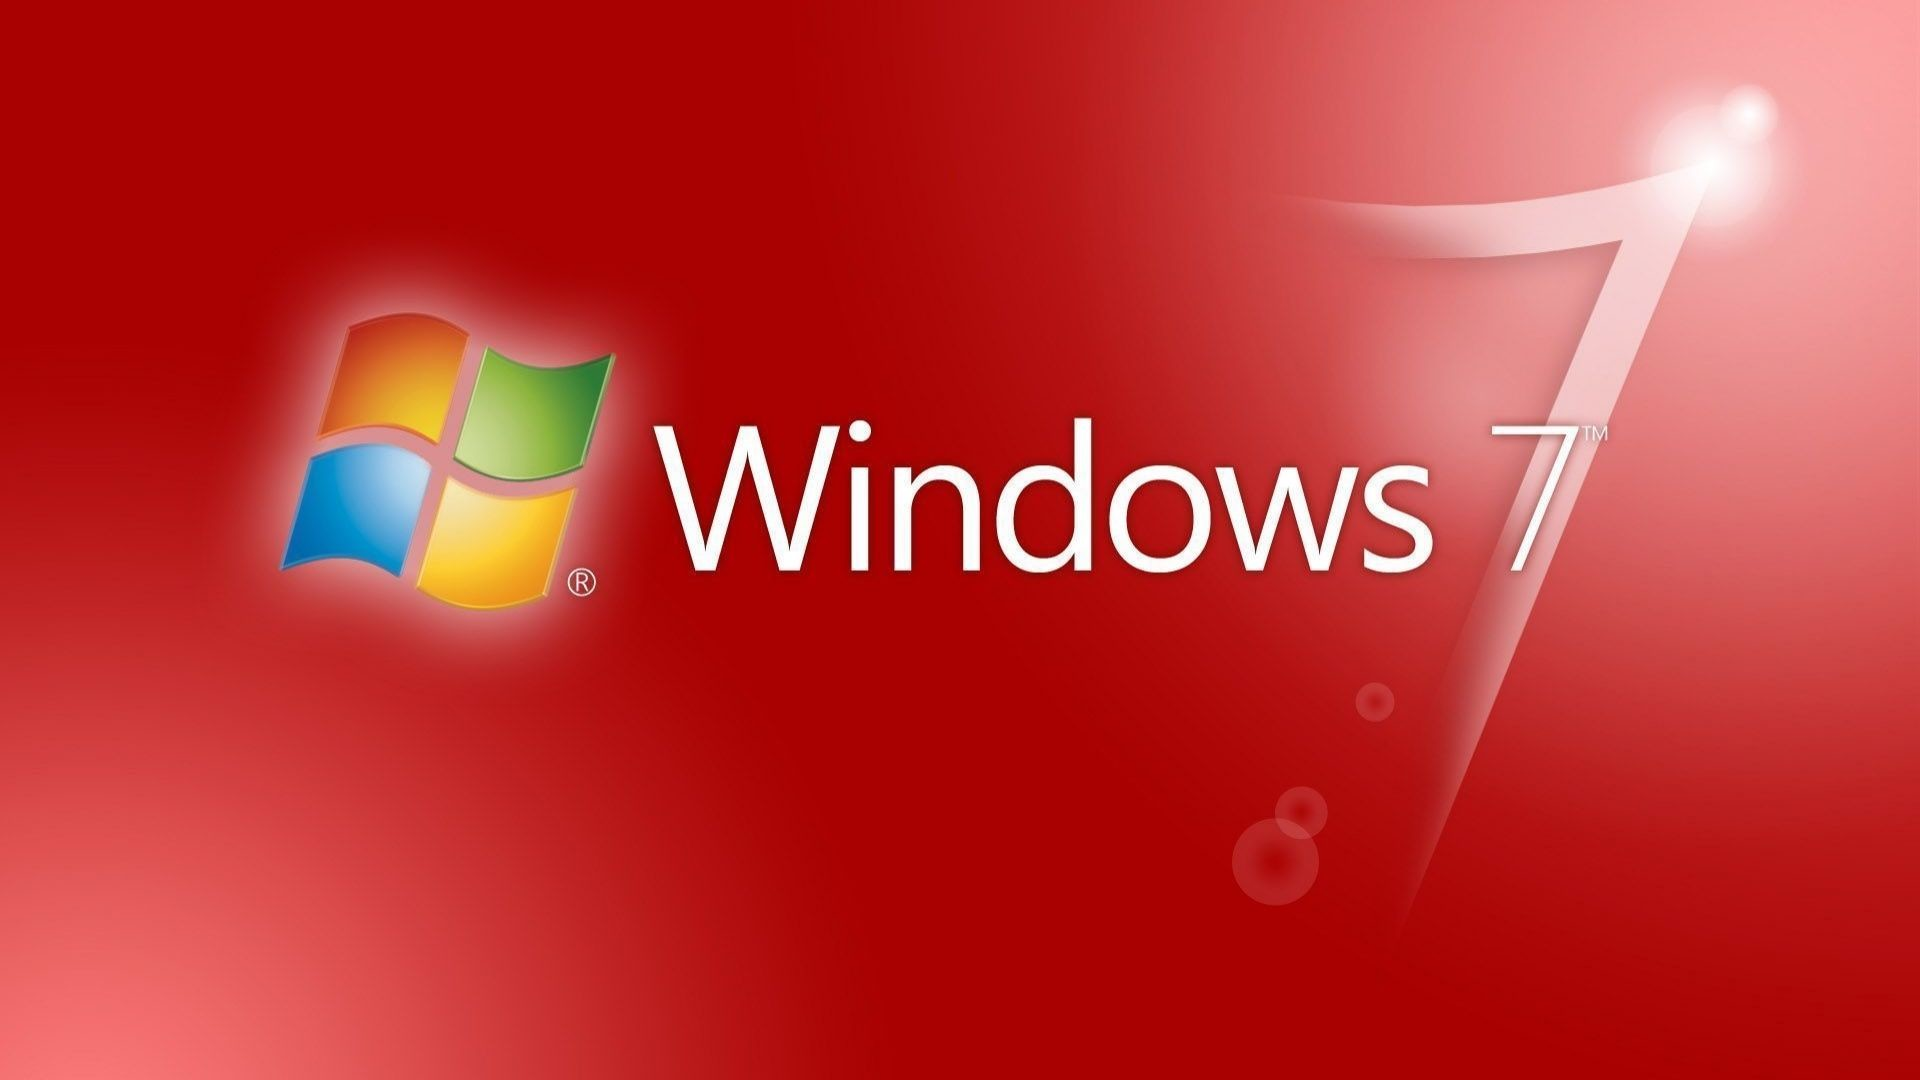 windows 7 hd wallpapers (78+ images)